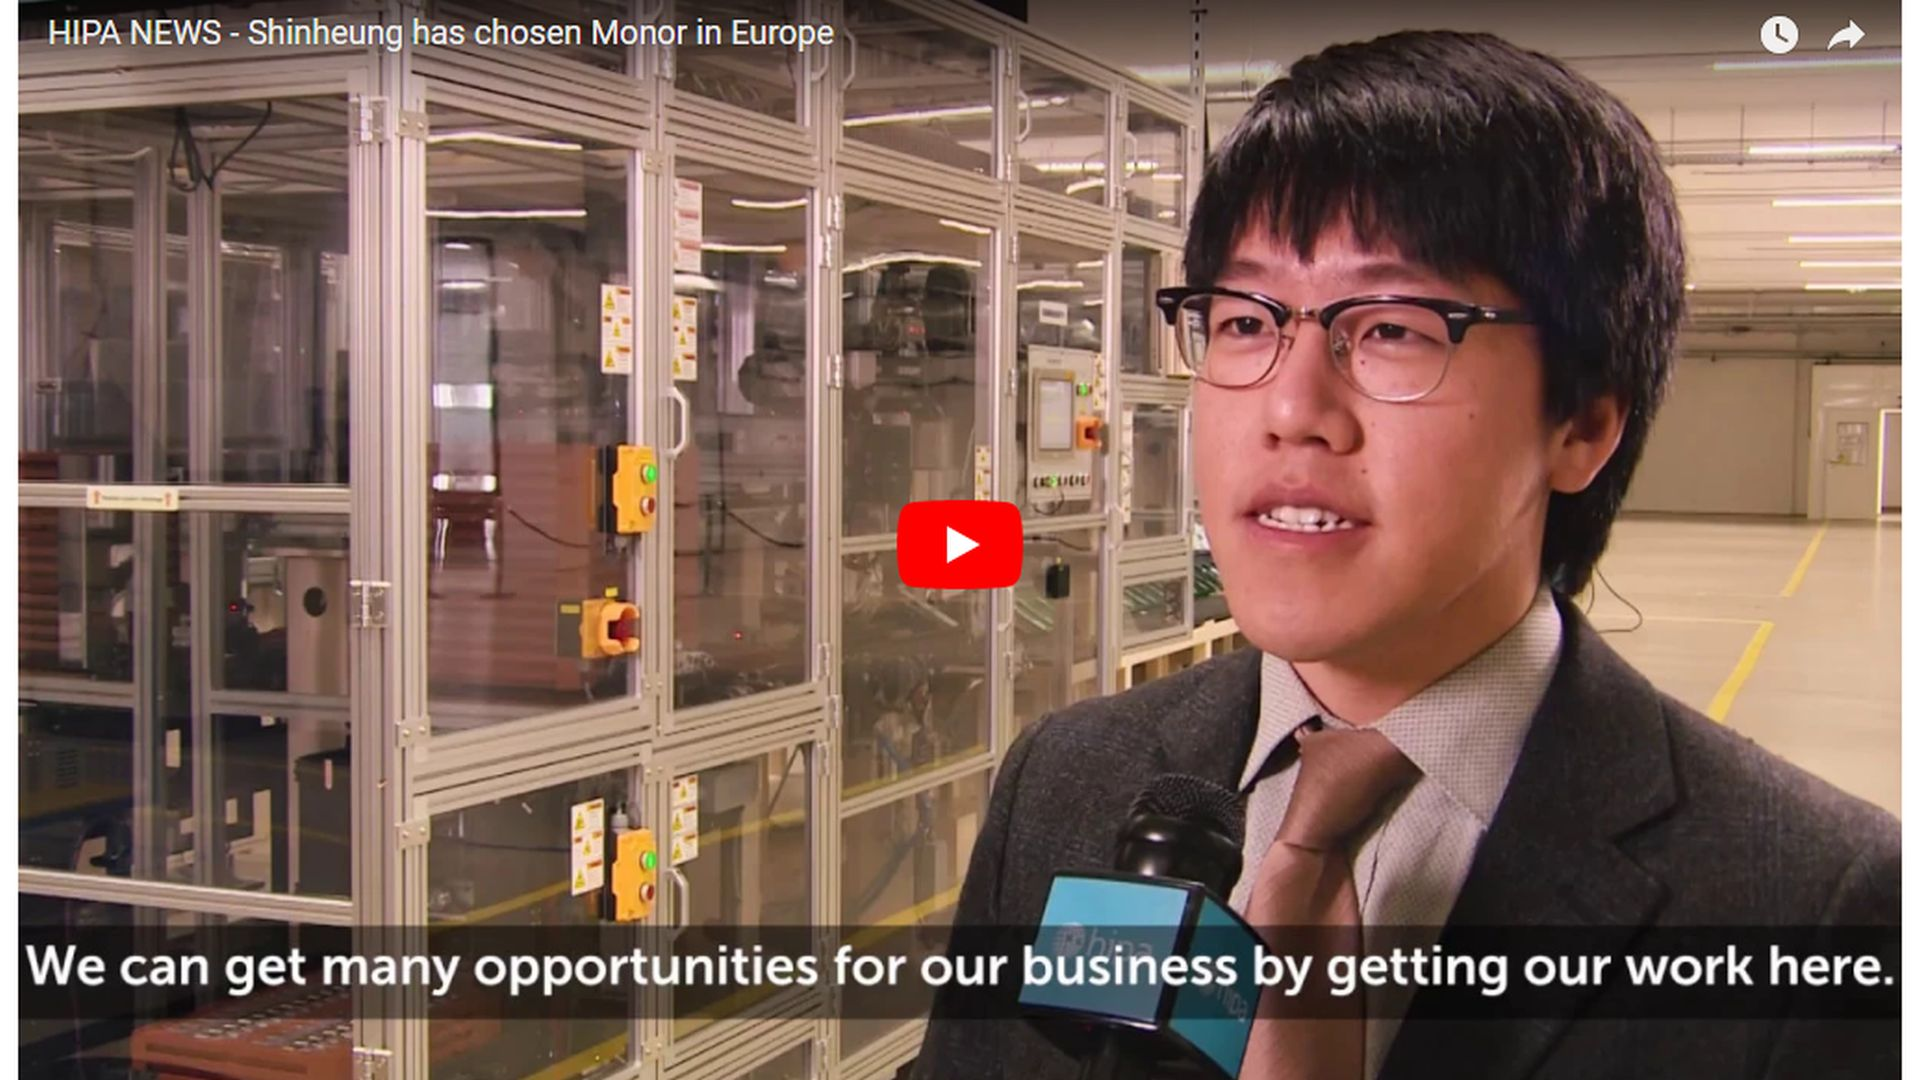 Another major Asian supplier has chosen Hungary for its European location - VIDEO REPORT